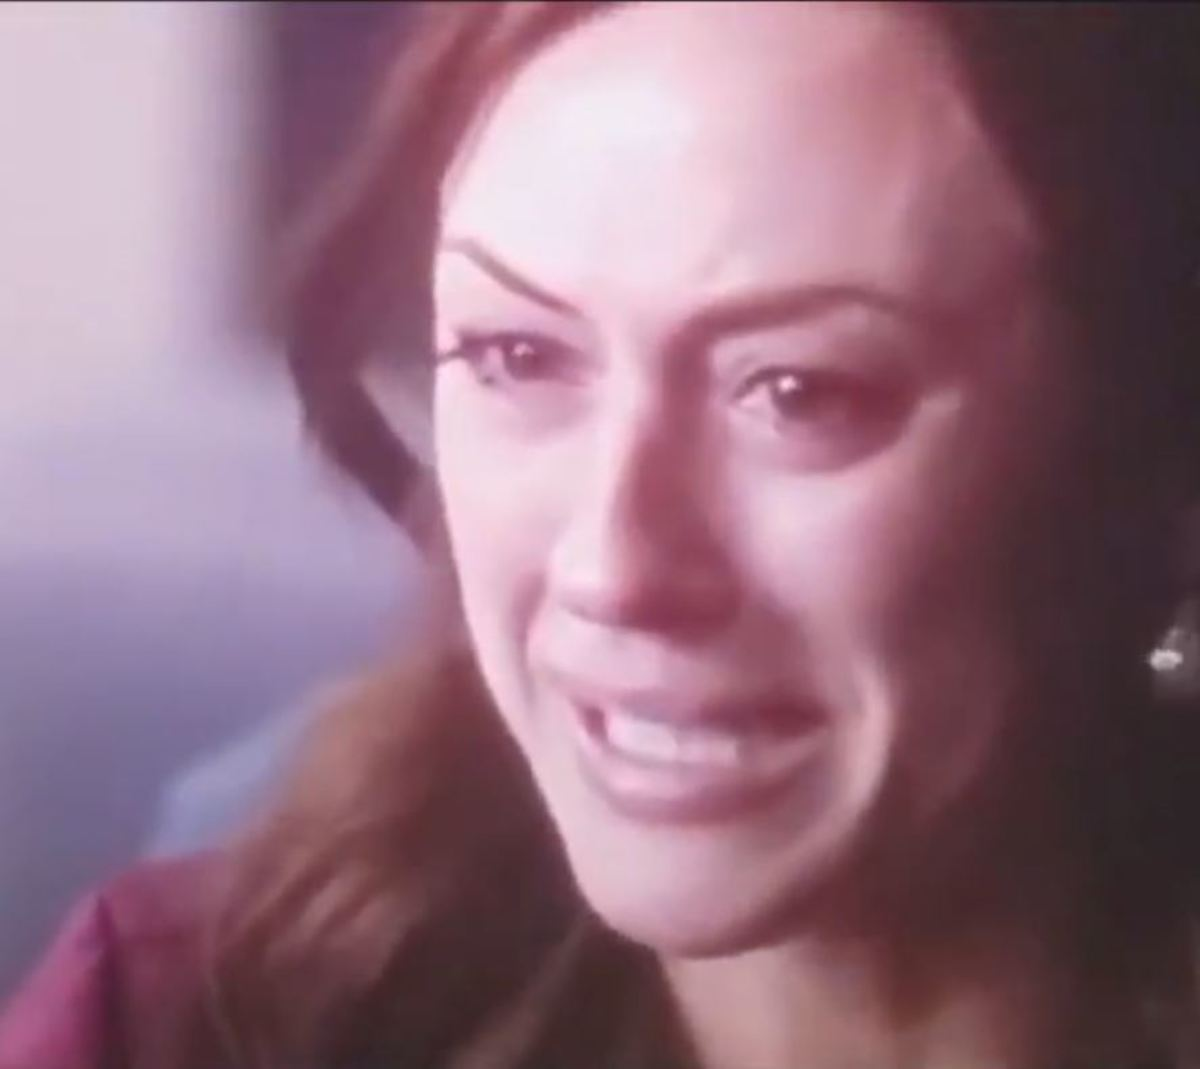 Half my scenes are crying while the other half is no emotion whatsoever!